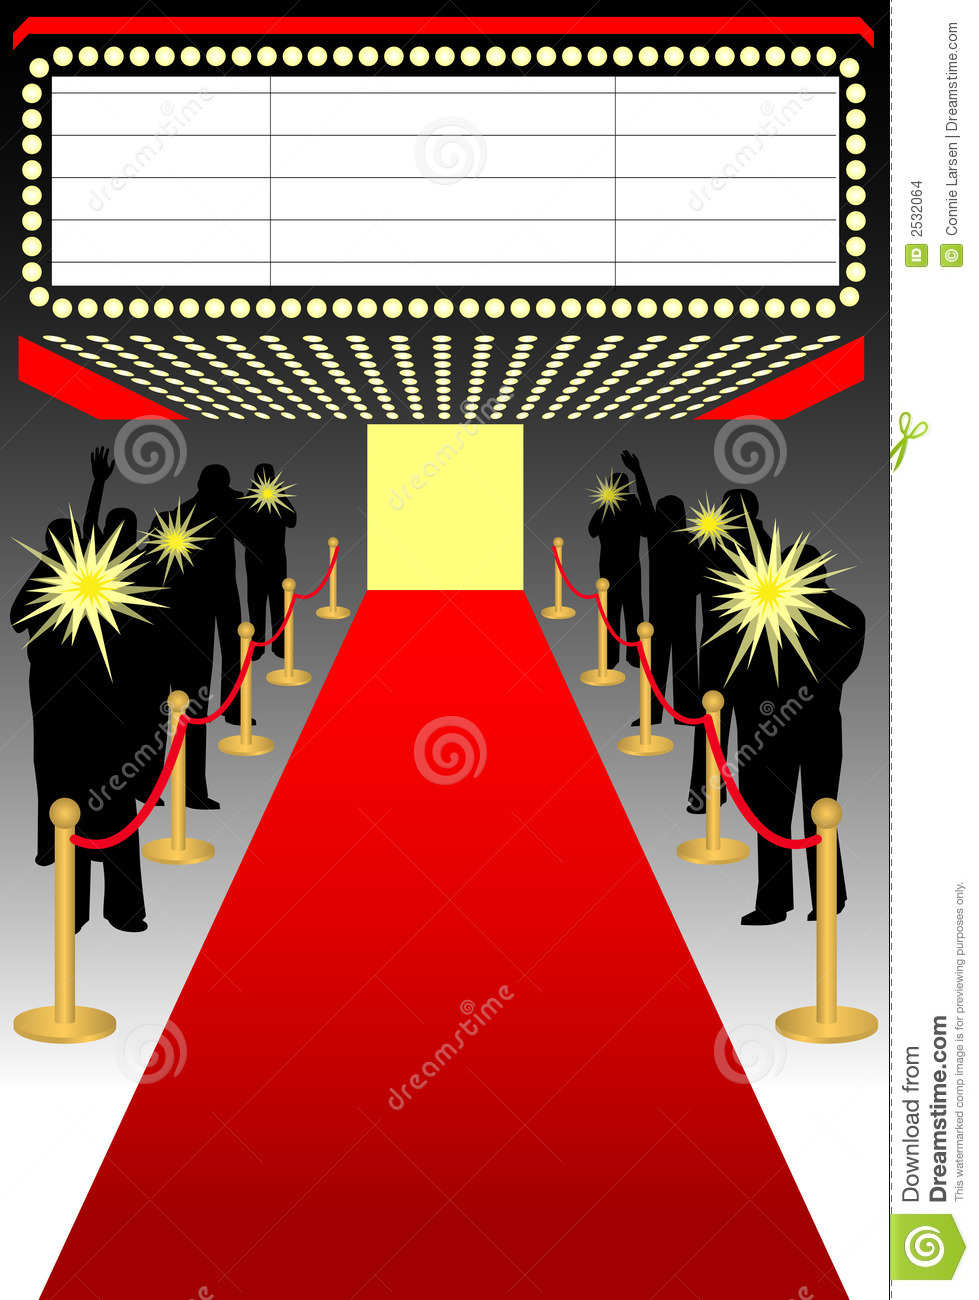 Illustration of a red carpet premier event complete with paparazzi ...